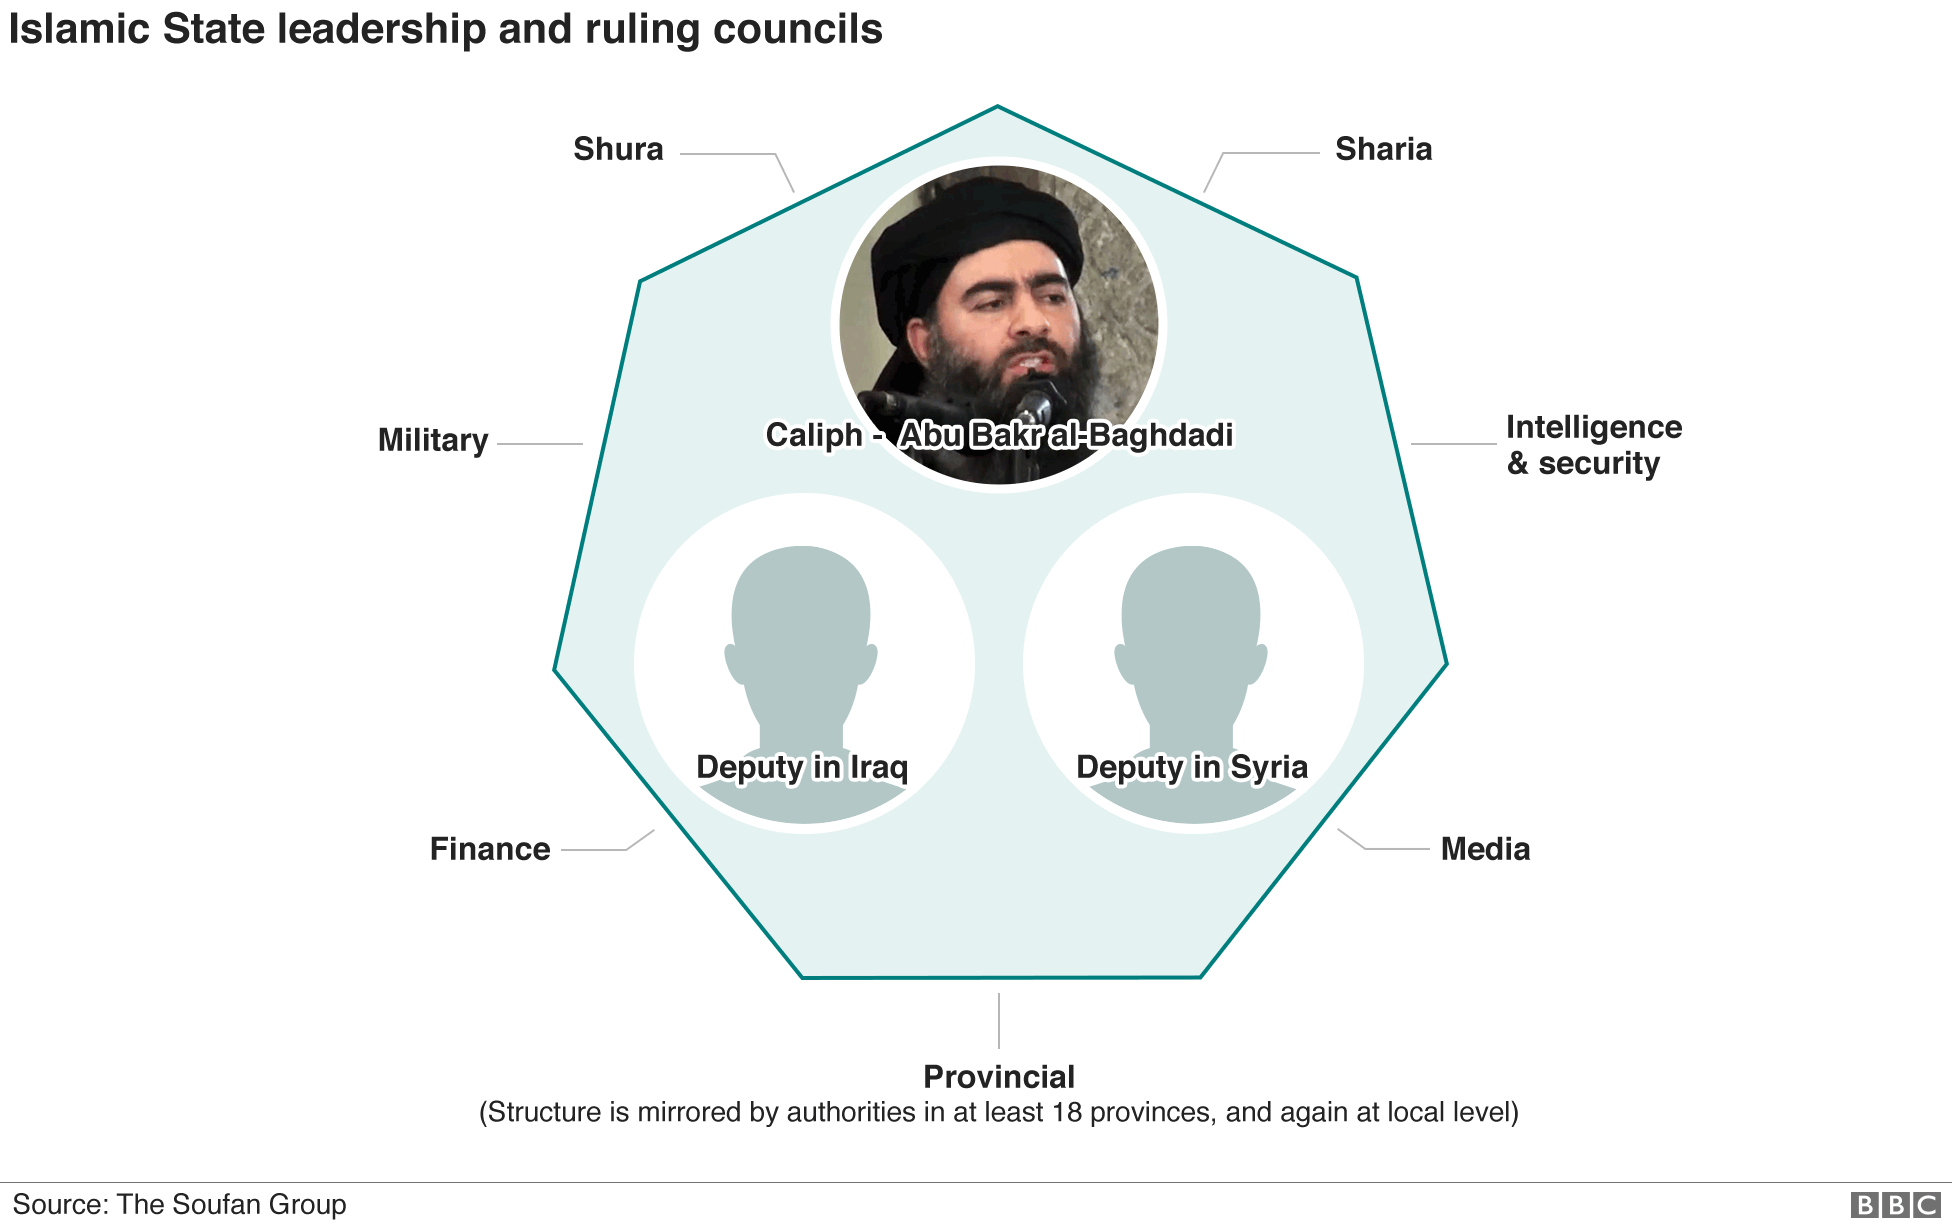 Chart showing Islamic State leadership and ruling councils